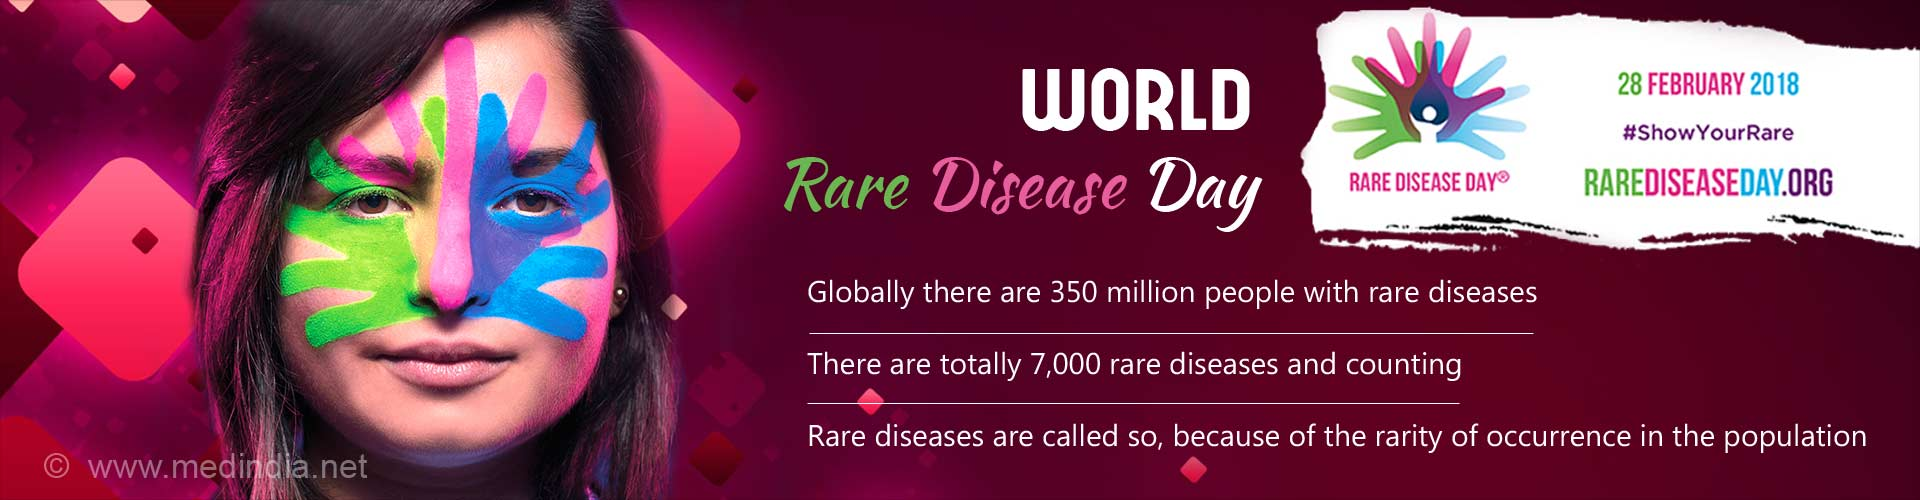 World Rare Disease Day